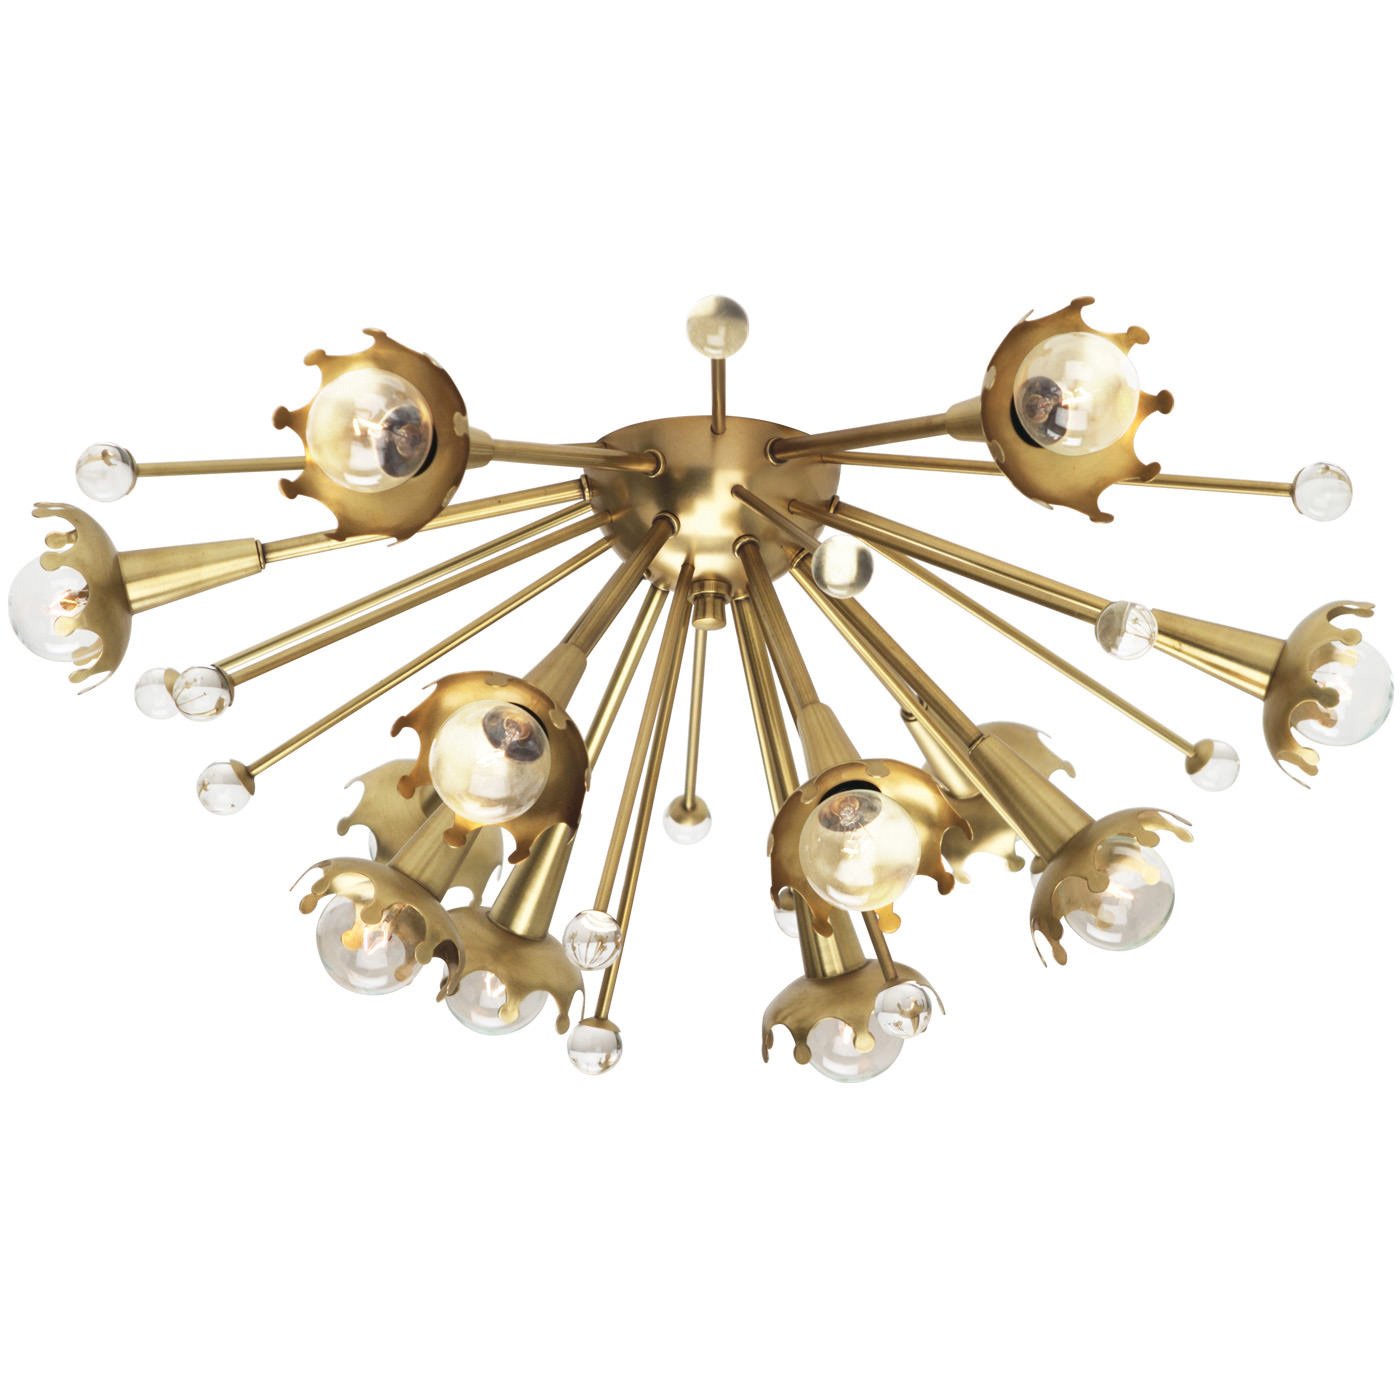 Sputnik Ceiling Light Fixture by Jonathan Adler | RA-711  sc 1 st  Lightology & Ceiling Light Fixture by Jonathan Adler | RA-711 azcodes.com